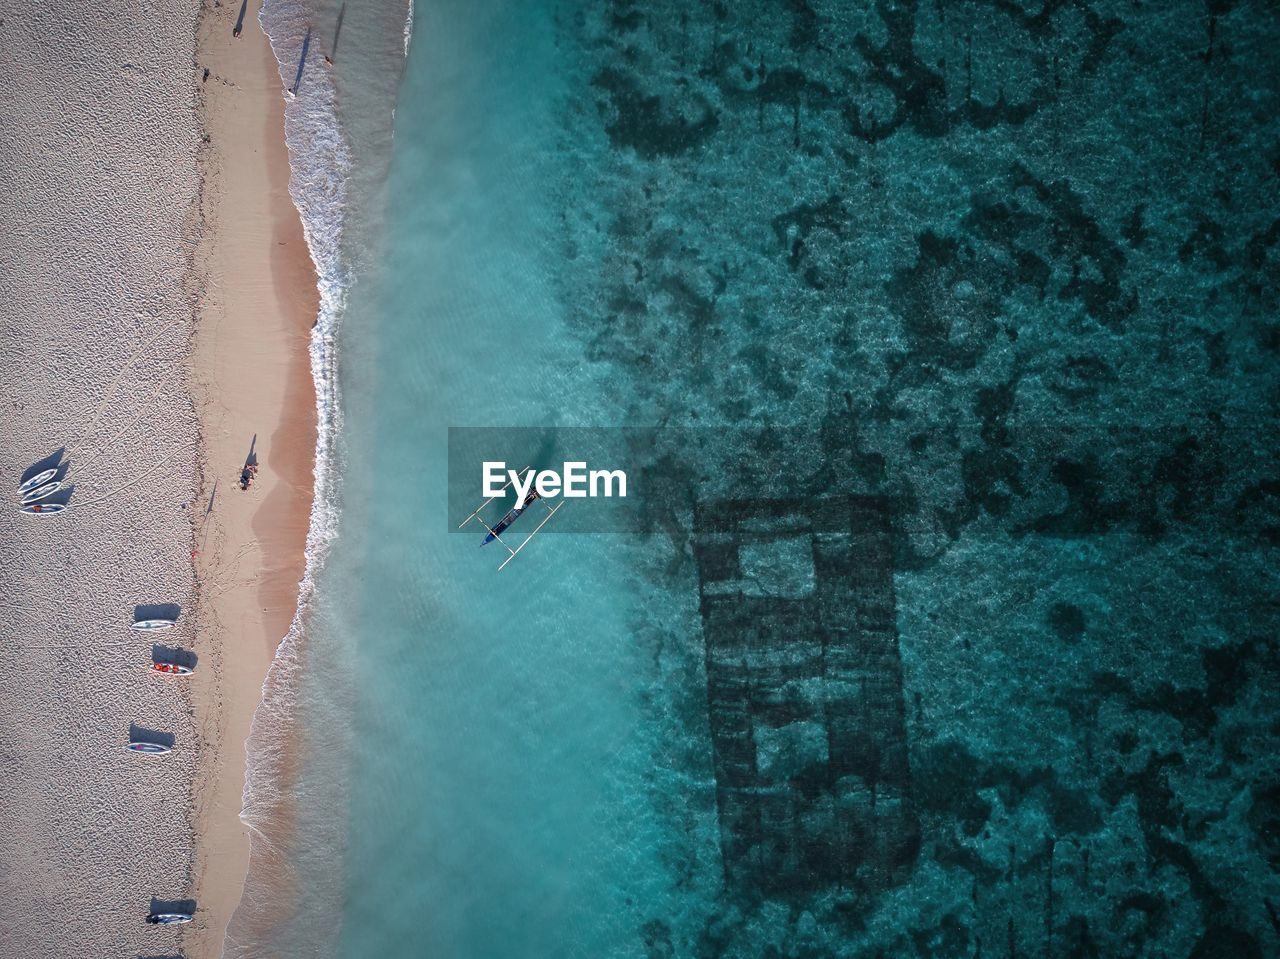 water, sea, beach, land, sport, nature, high angle view, day, motion, beauty in nature, scenics - nature, people, incidental people, outdoors, travel, architecture, holiday, aquatic sport, travel destinations